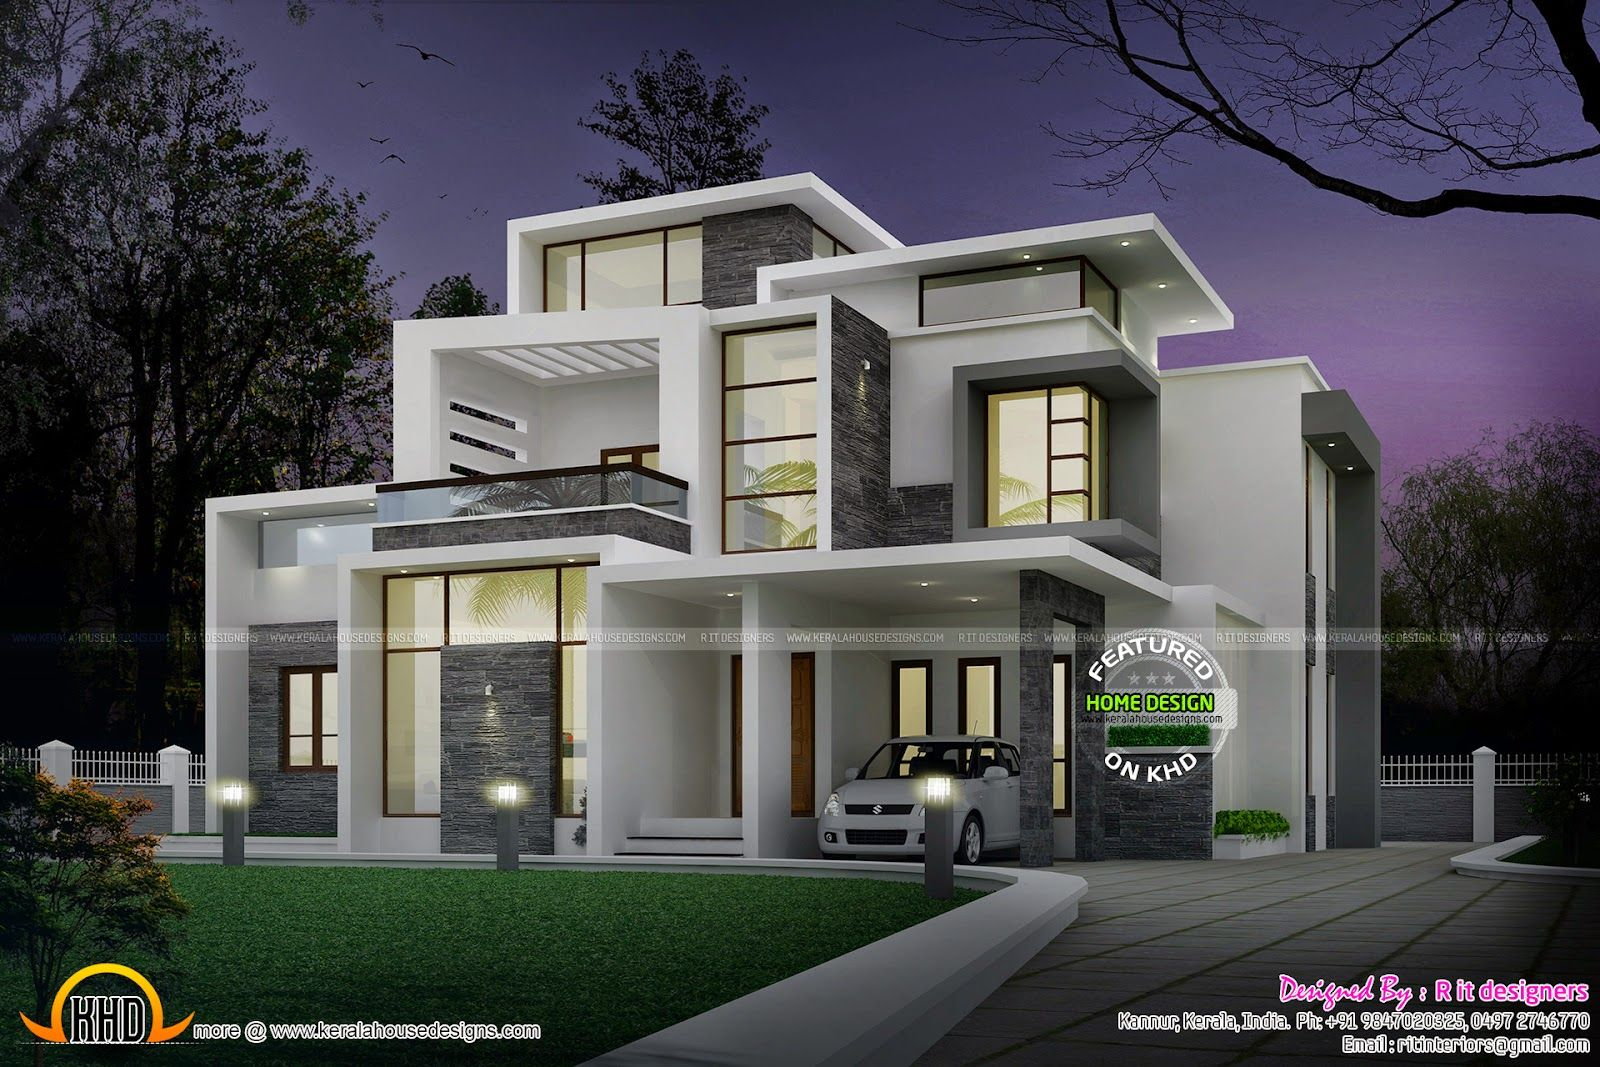 Grand contemporary home design kerala home design and for New home plans 2015